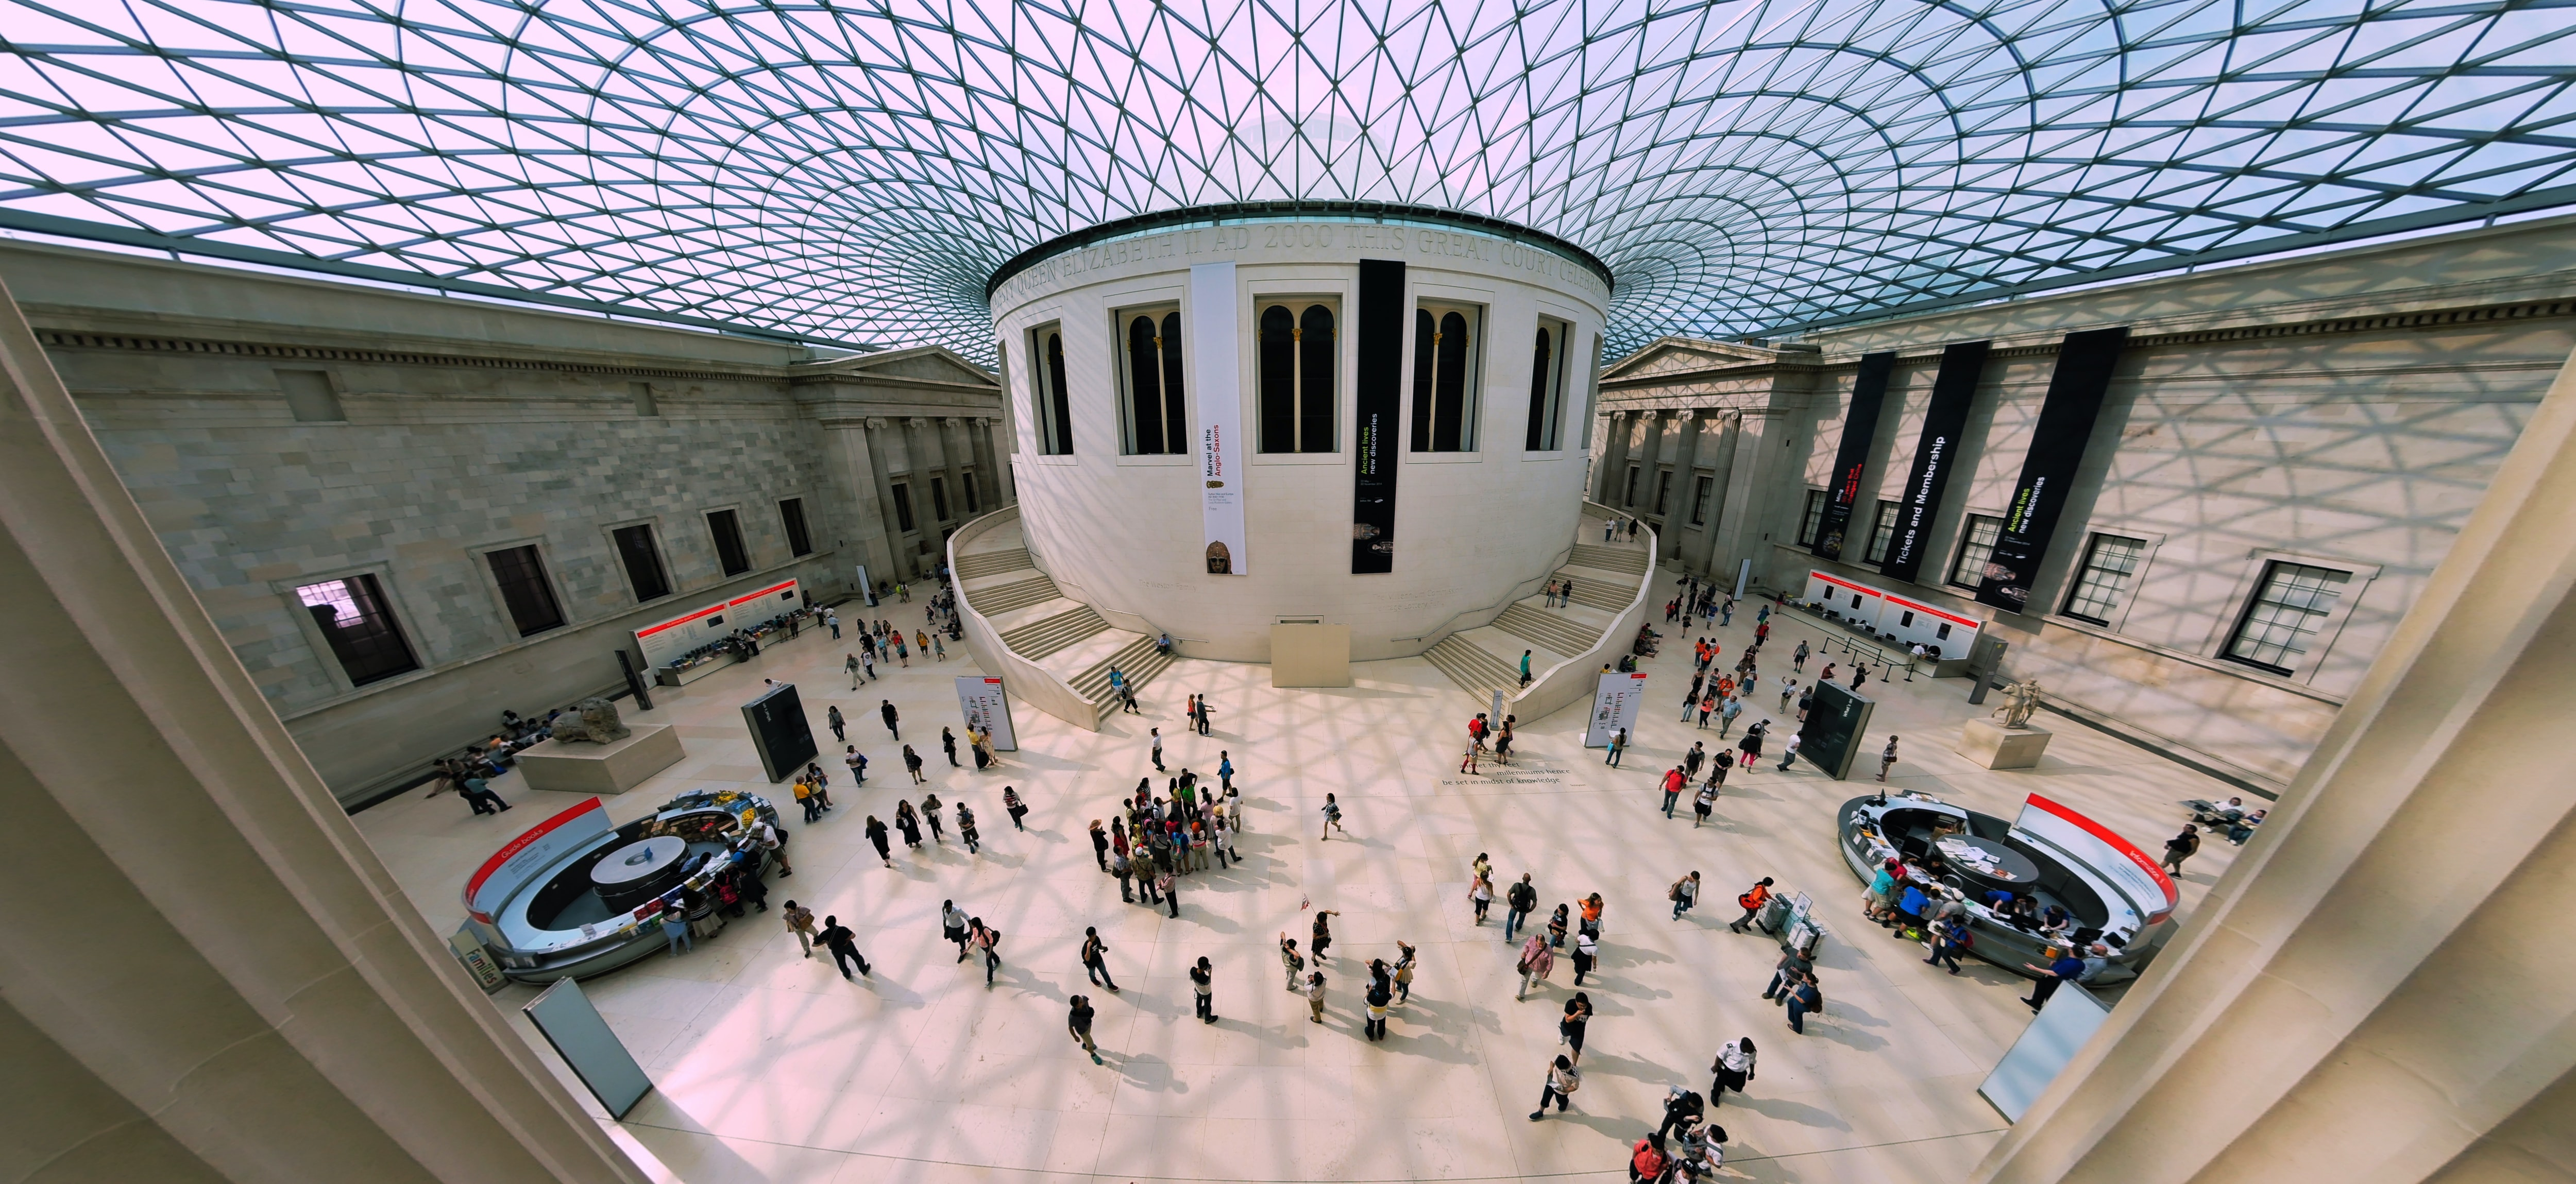 An aerial view of the inside of the British Museum with a glass roof, information desks, and people milling about.